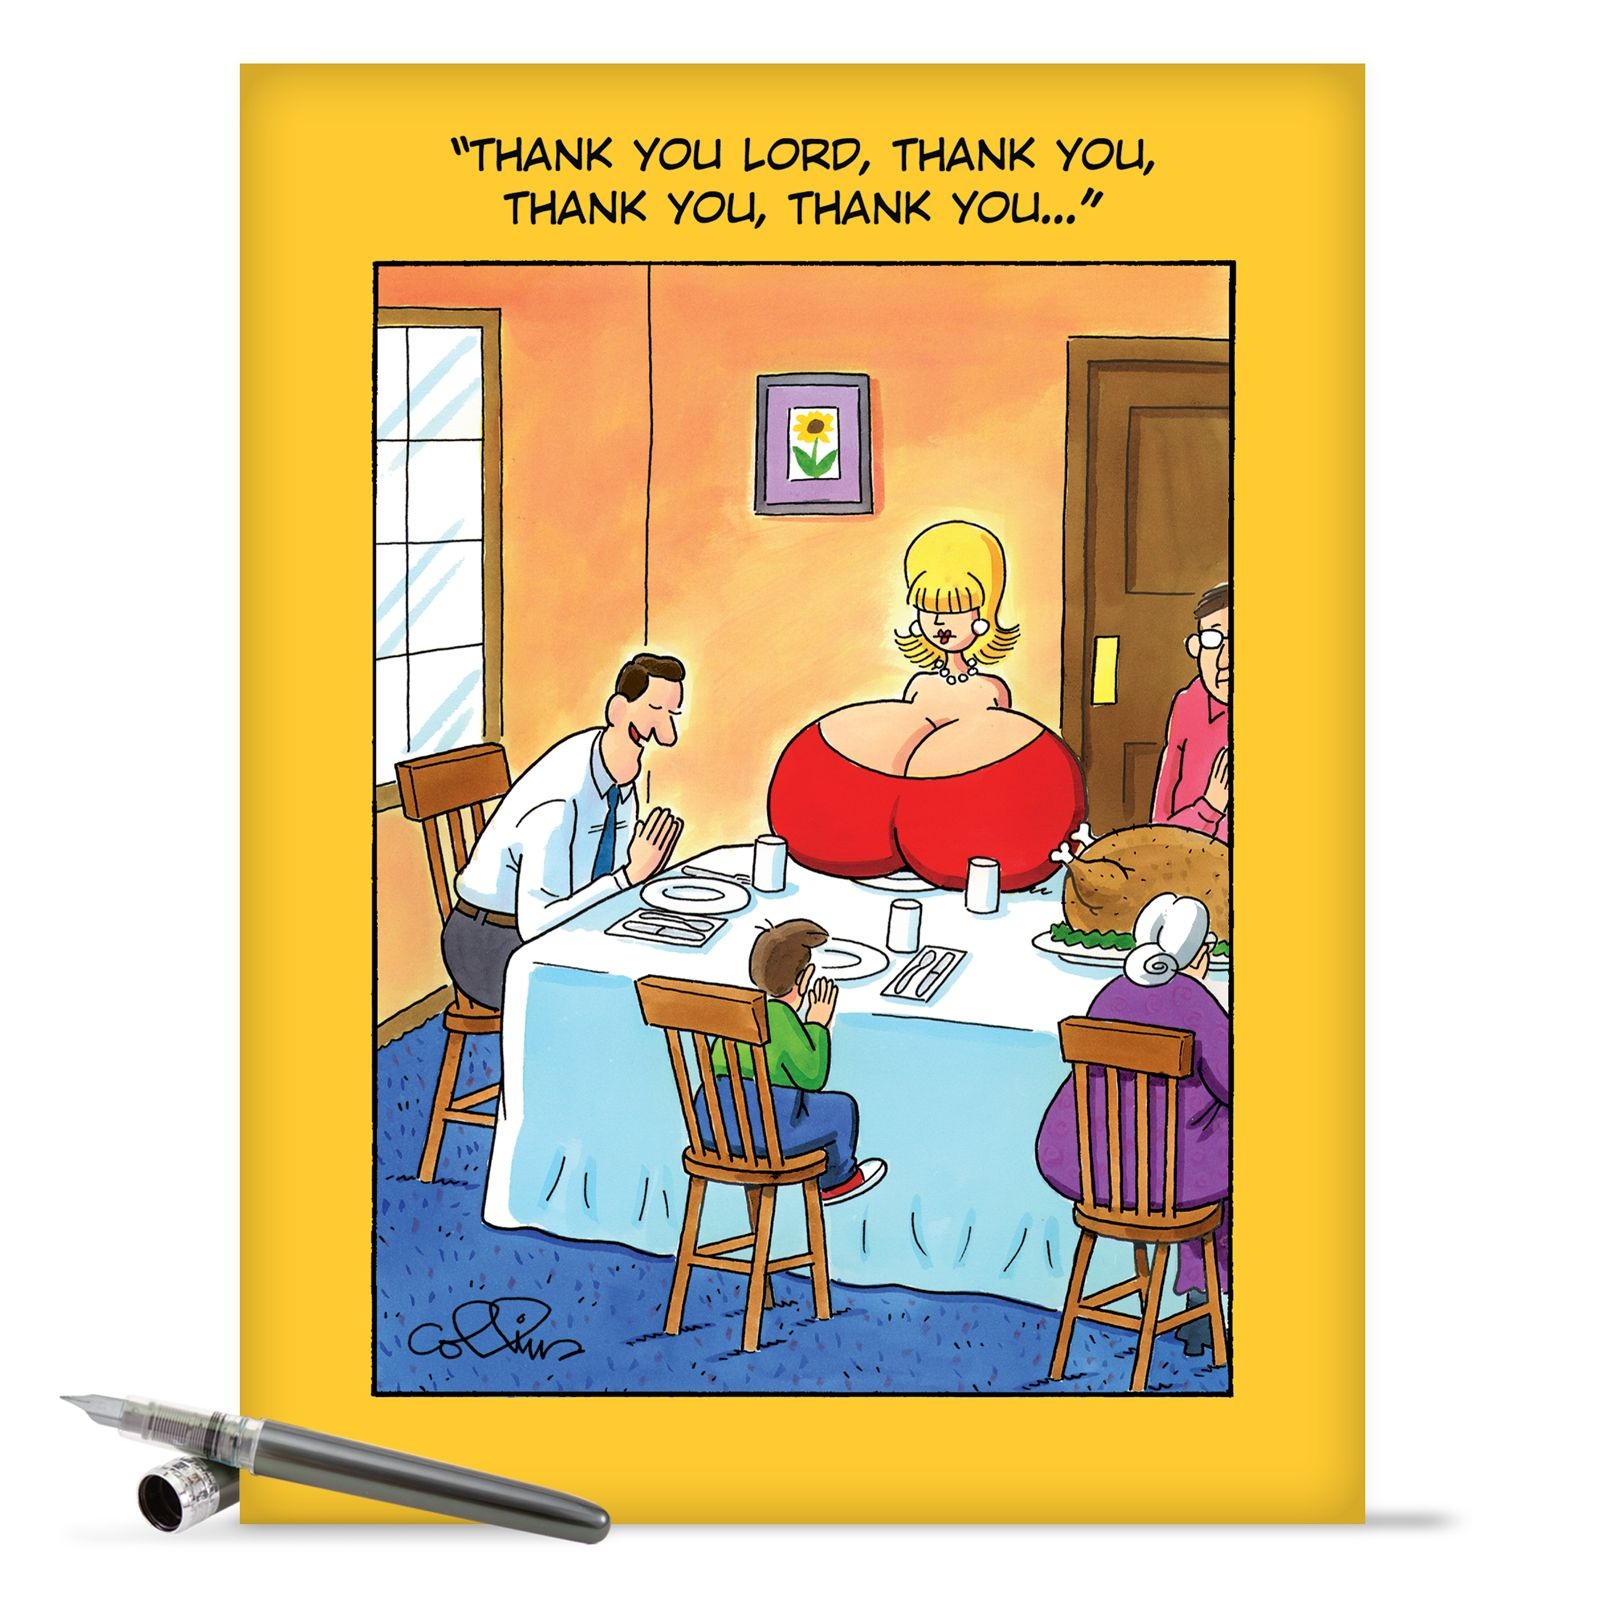 J8420 Jumbo Funny Birthday Card Thank You Lord With